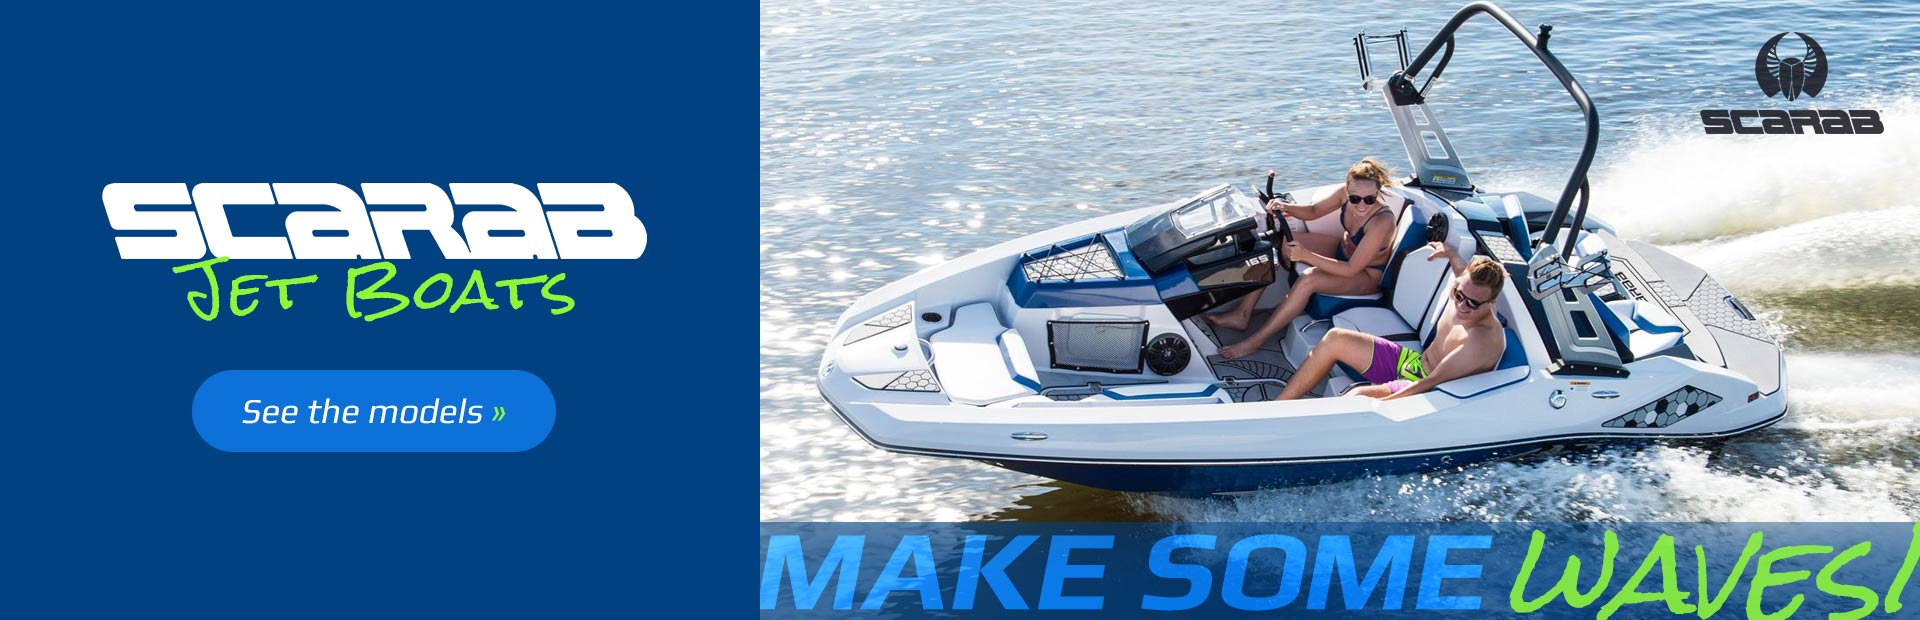 Scarab Jet Boats: Click here to view the models.